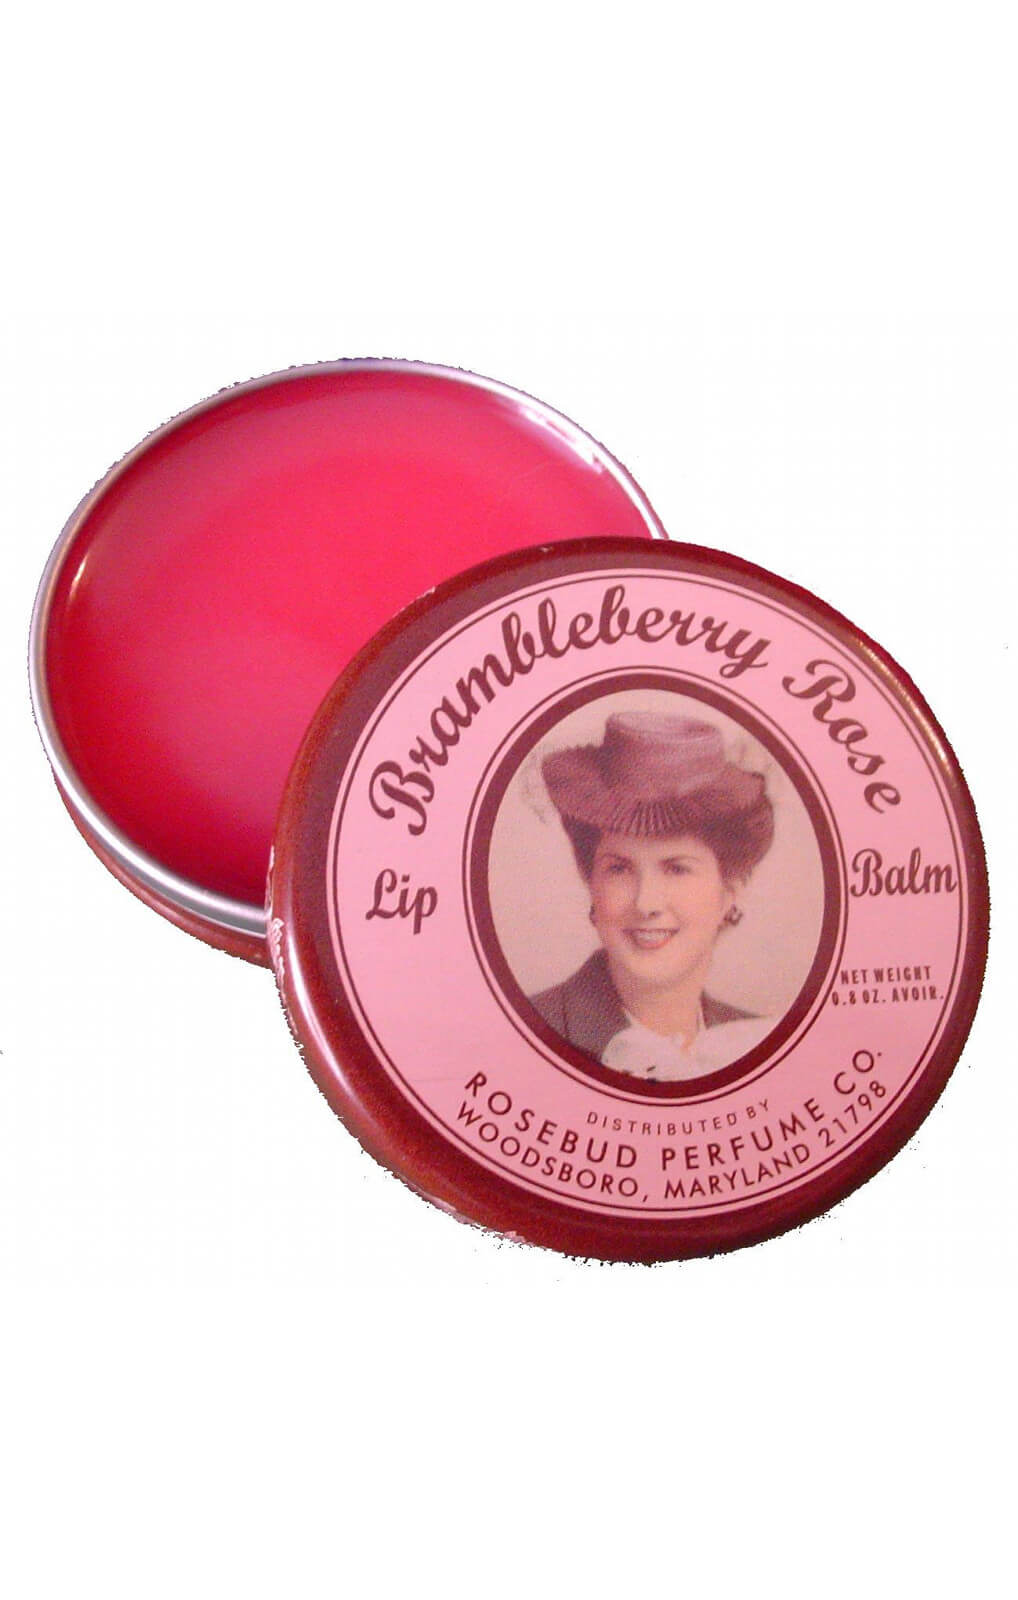 smith's rosebud brambleberry lip balm